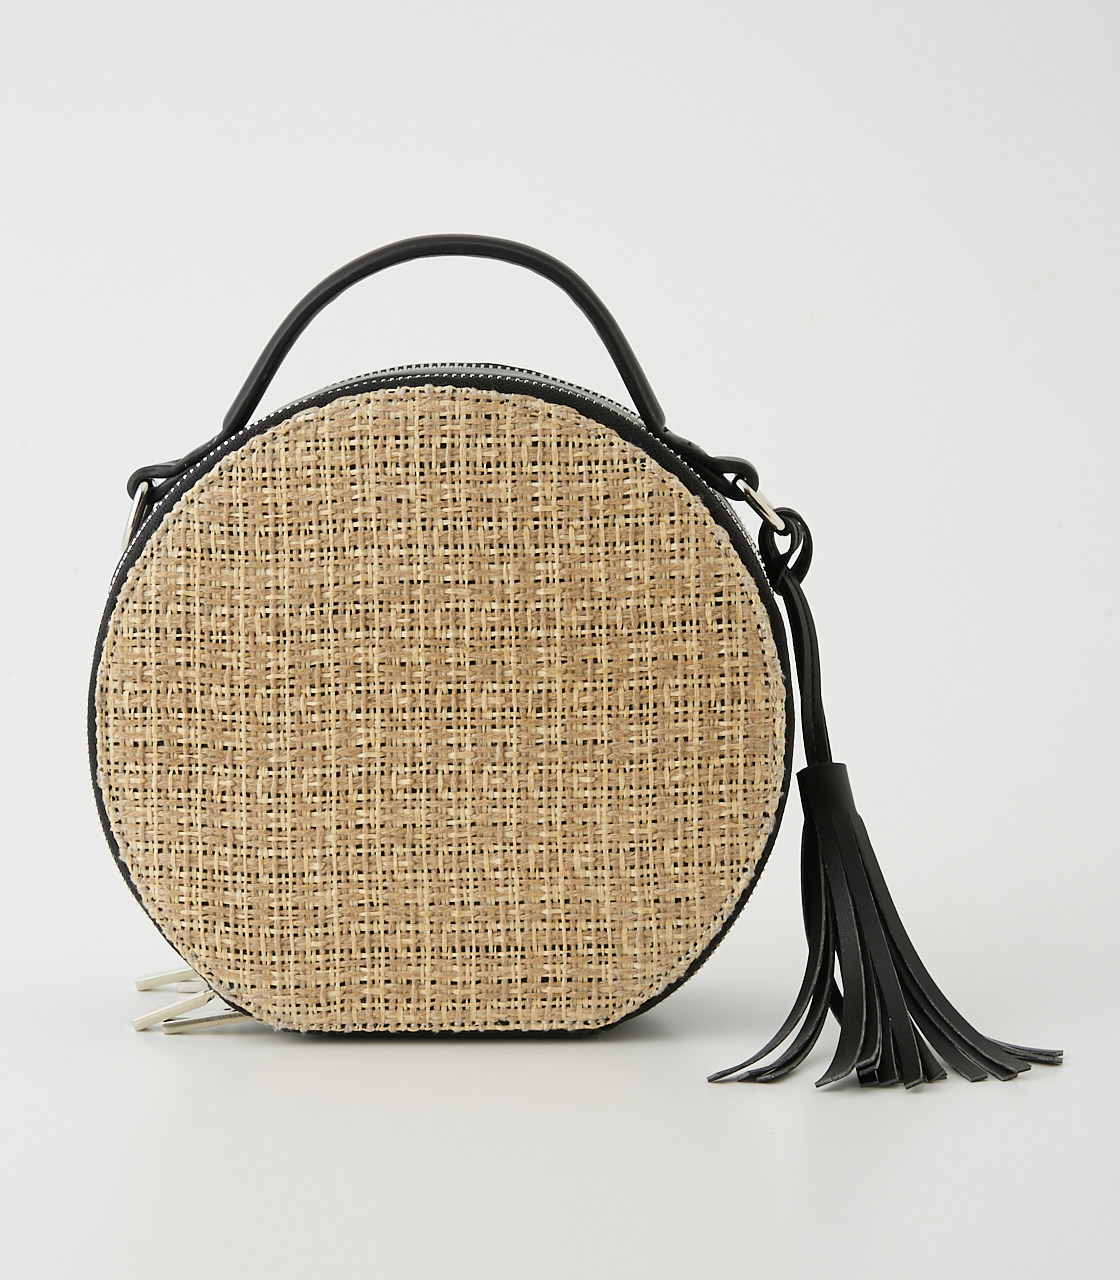 CIRCLE STRAWMESH SHOULDER BAG 詳細画像 柄BLK 2